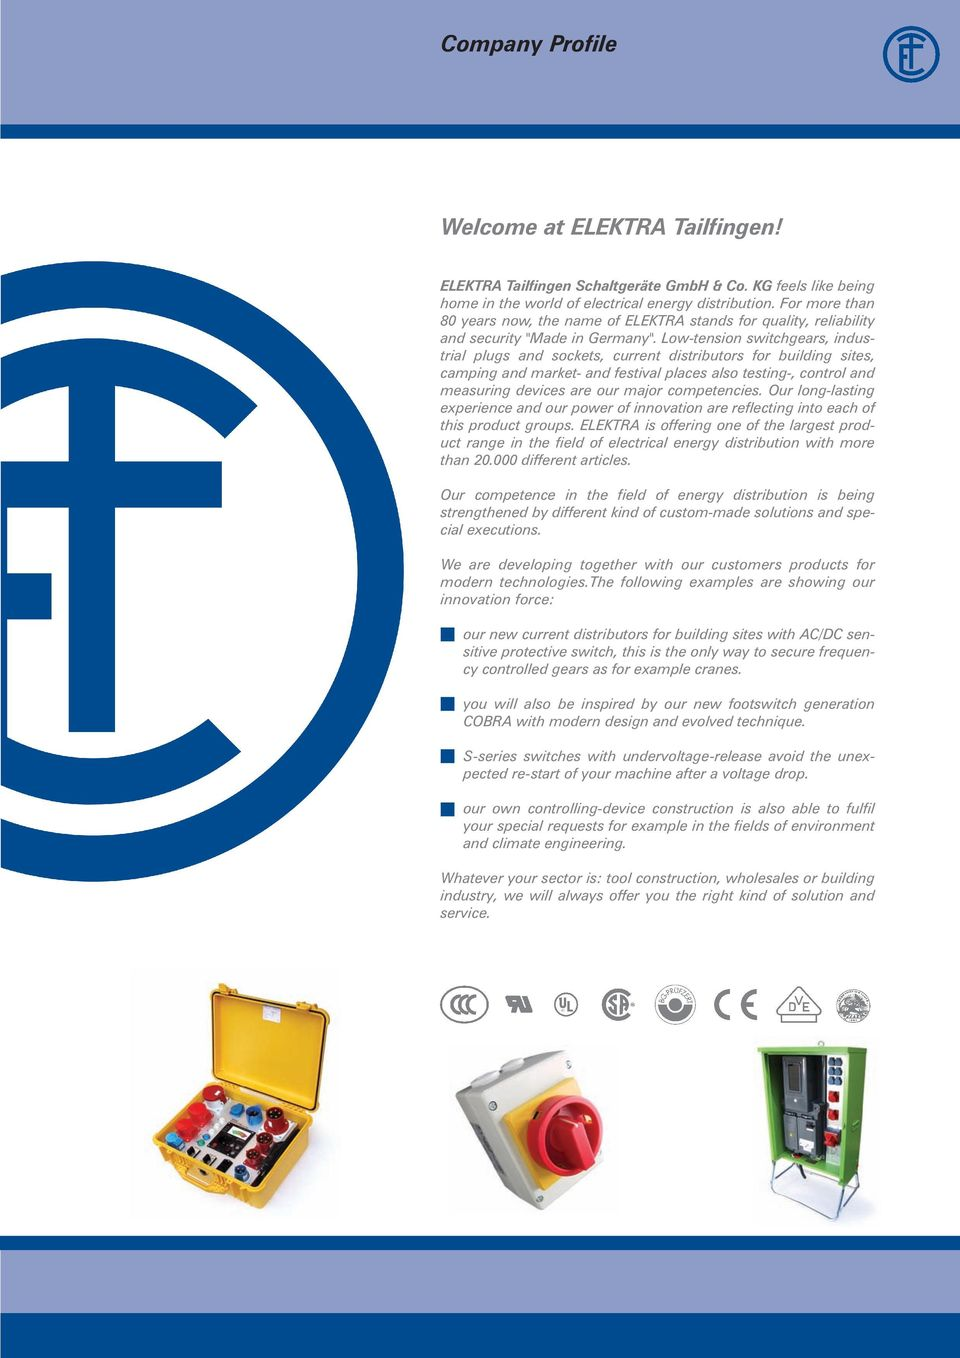 Low-tension switchgears, industrial plugs and sockets, current distributors for building sites, camping and market- and festival places also testing-, control and measuring devices are our major